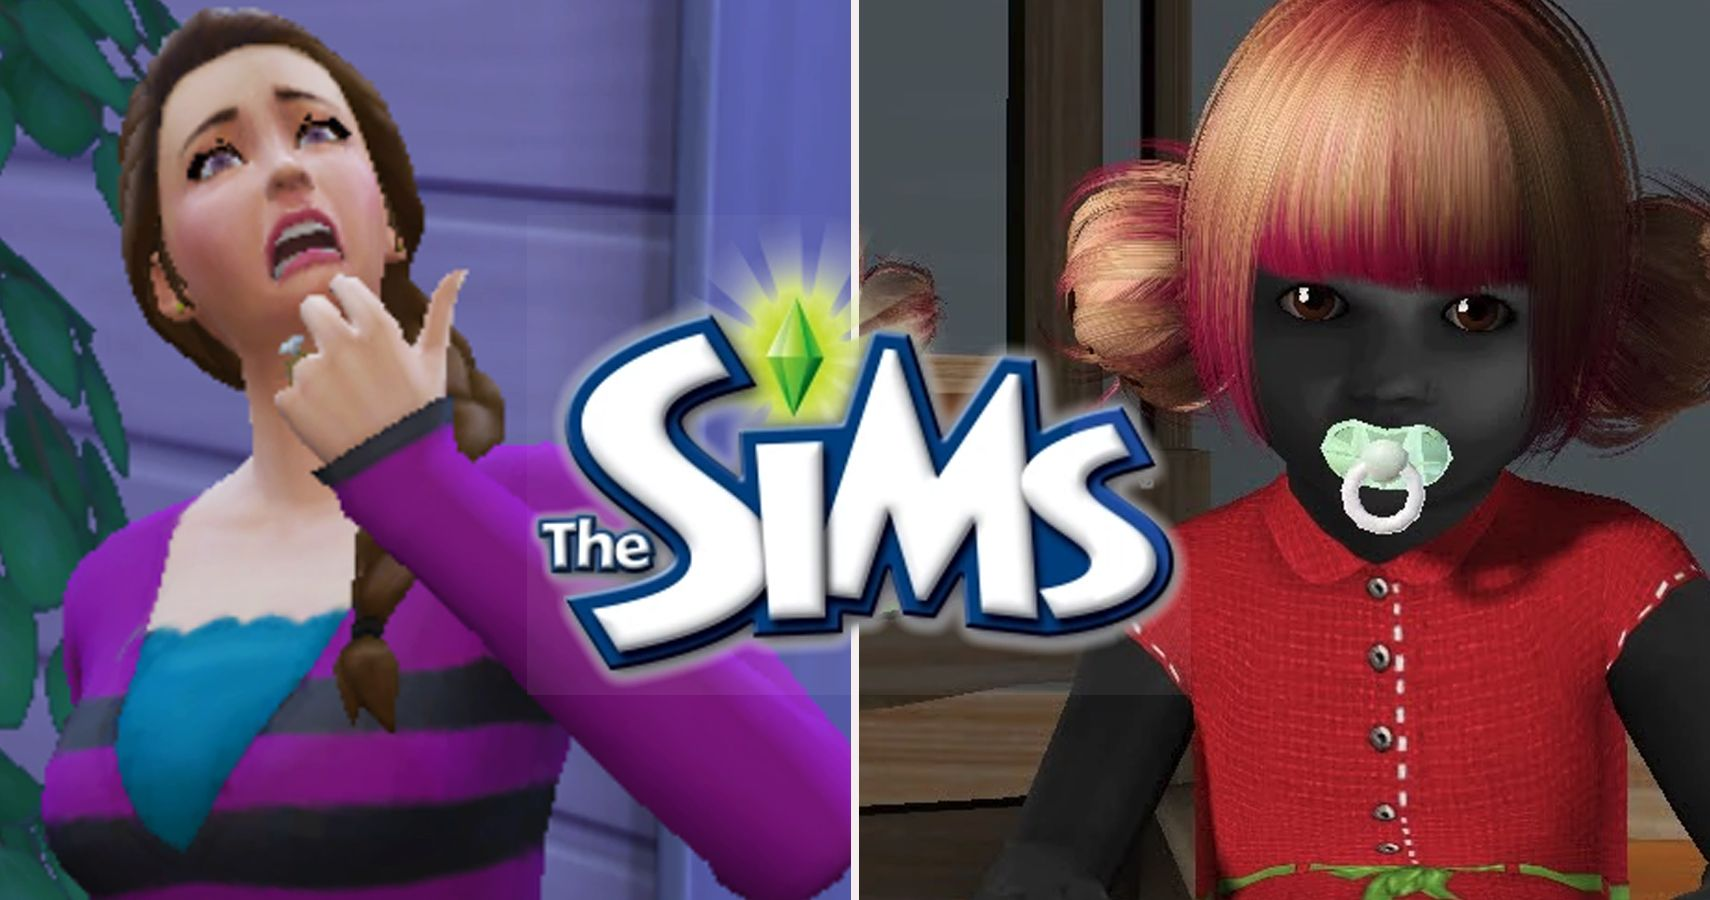 Horrifying: Disturbing Facts You Didn't Know About The Sims